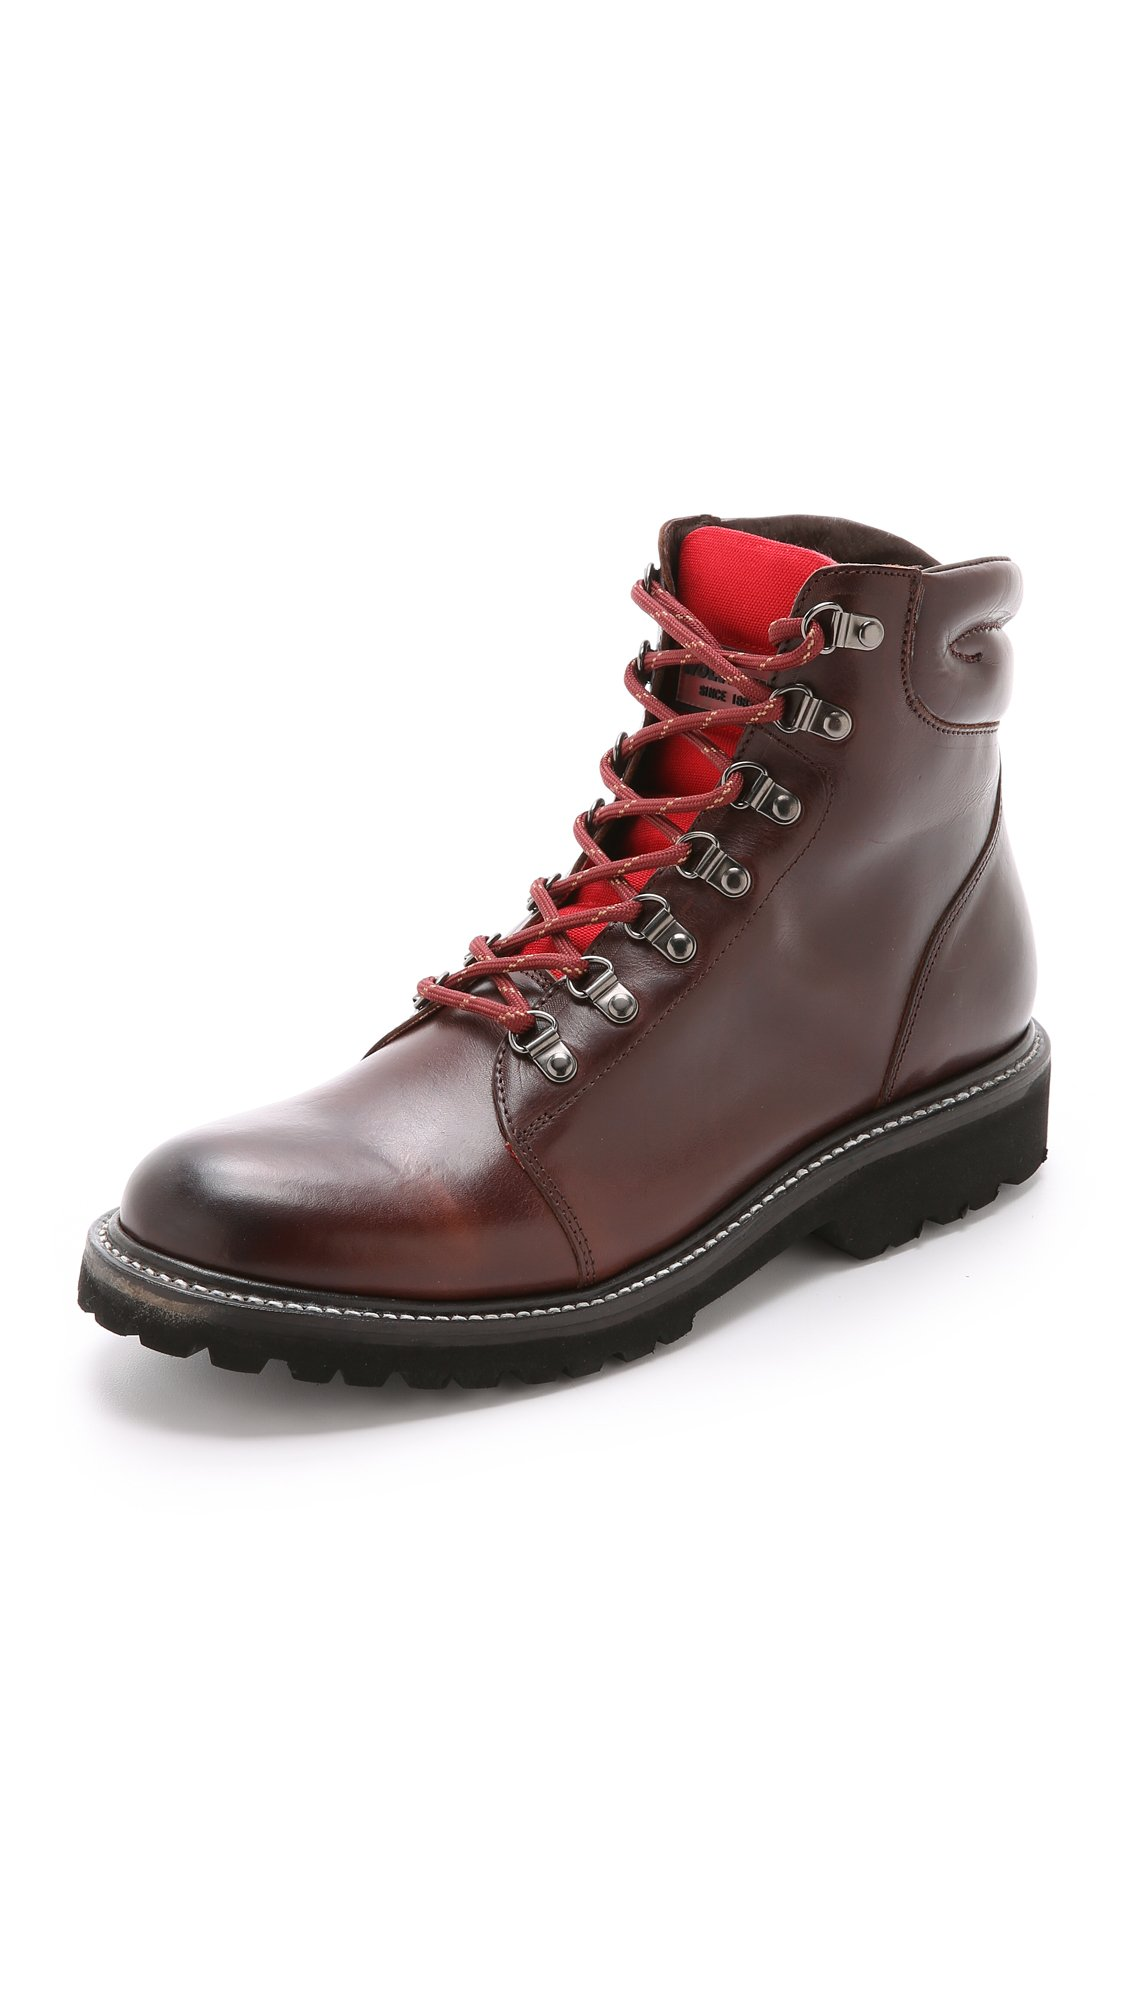 Wolverine Copeland Boots In Purple For Men Lyst